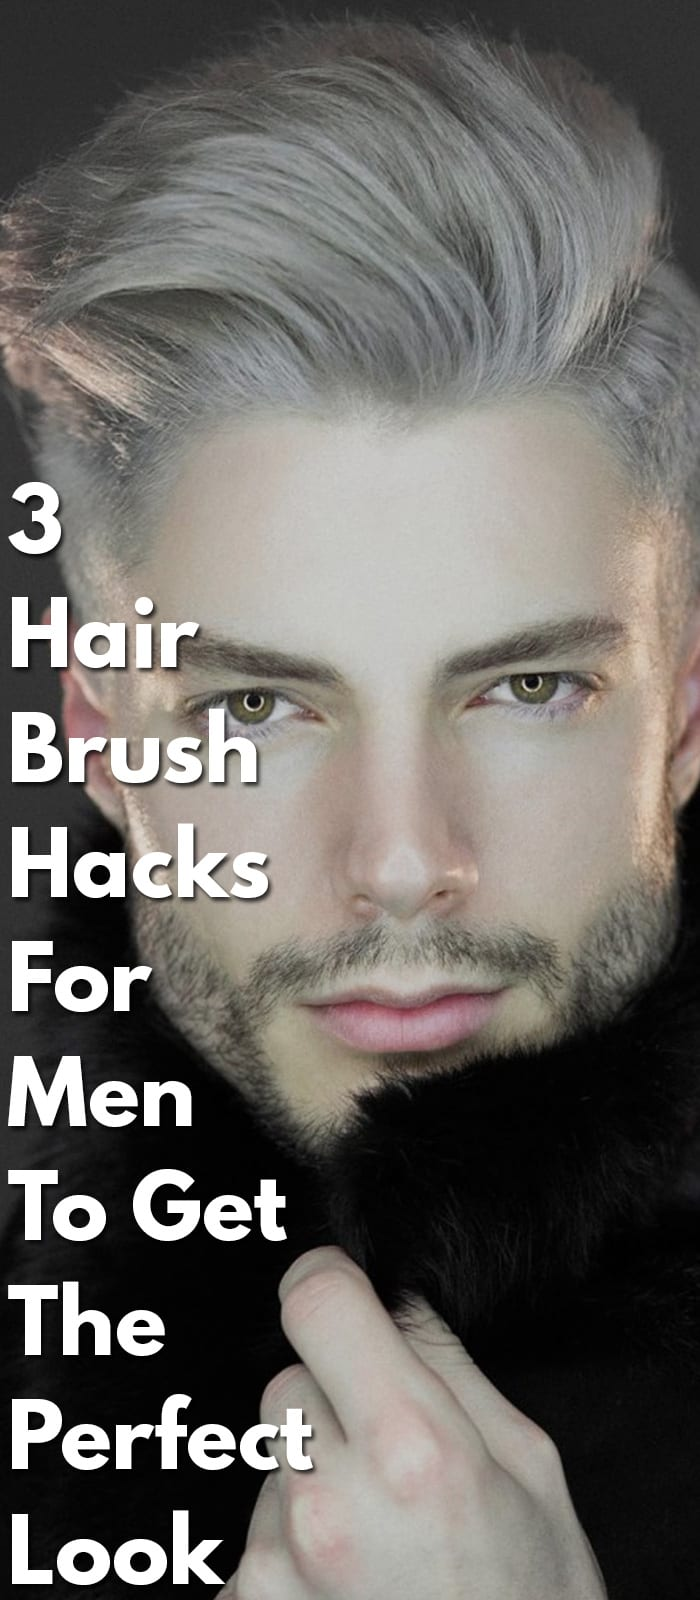 3-Hair-Brush-Hacks-For-Men-To-Get-The-Perfect-Look...